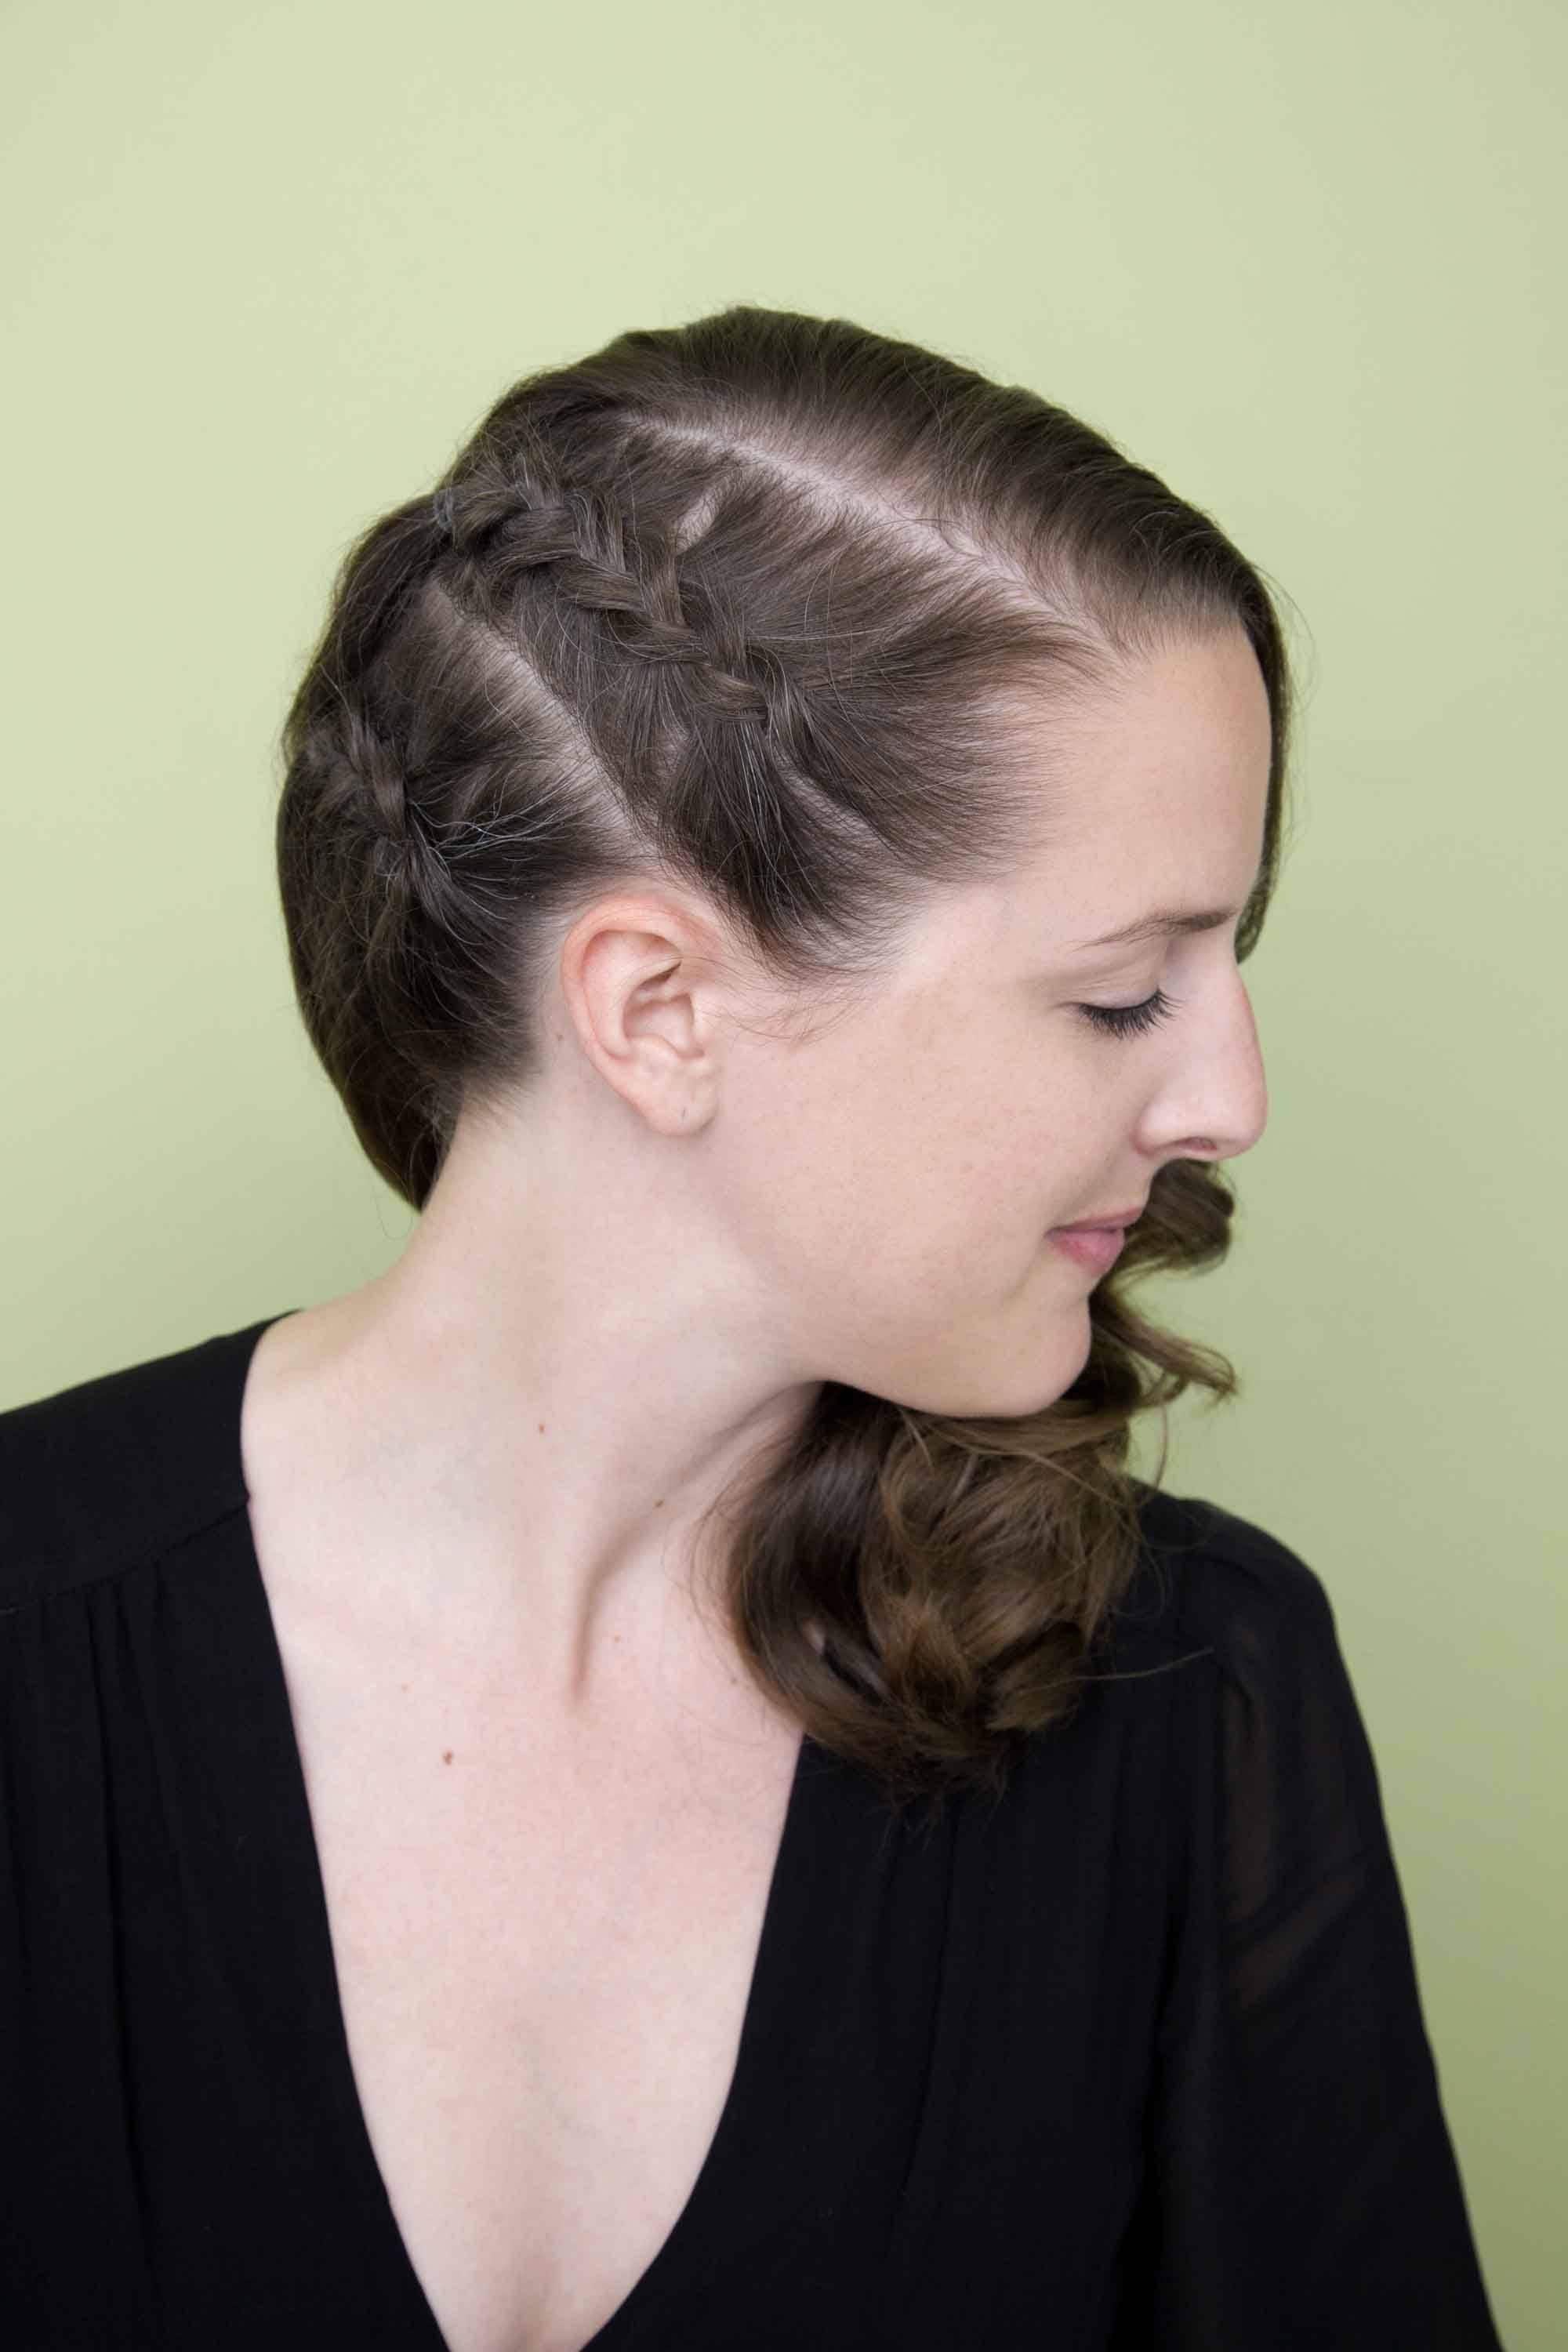 heat-damaged hair faux side shave